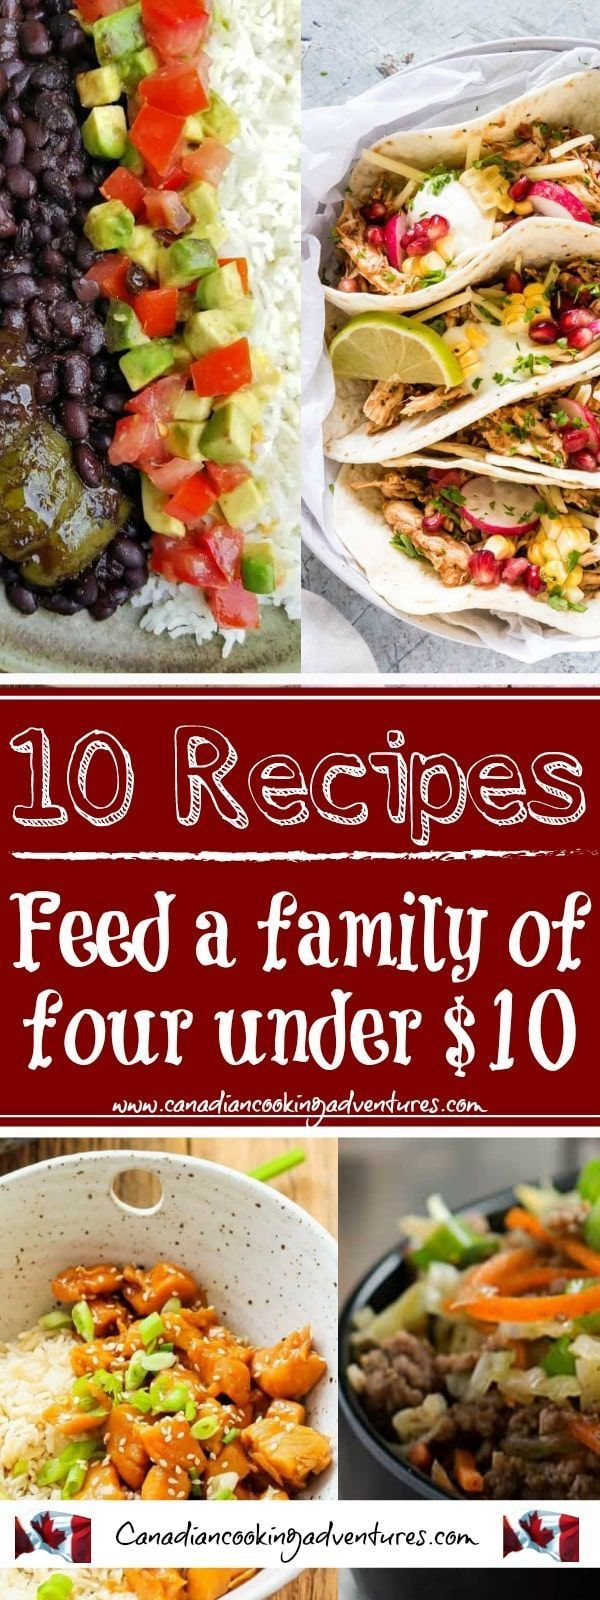 Feed a family of four for under $10 images